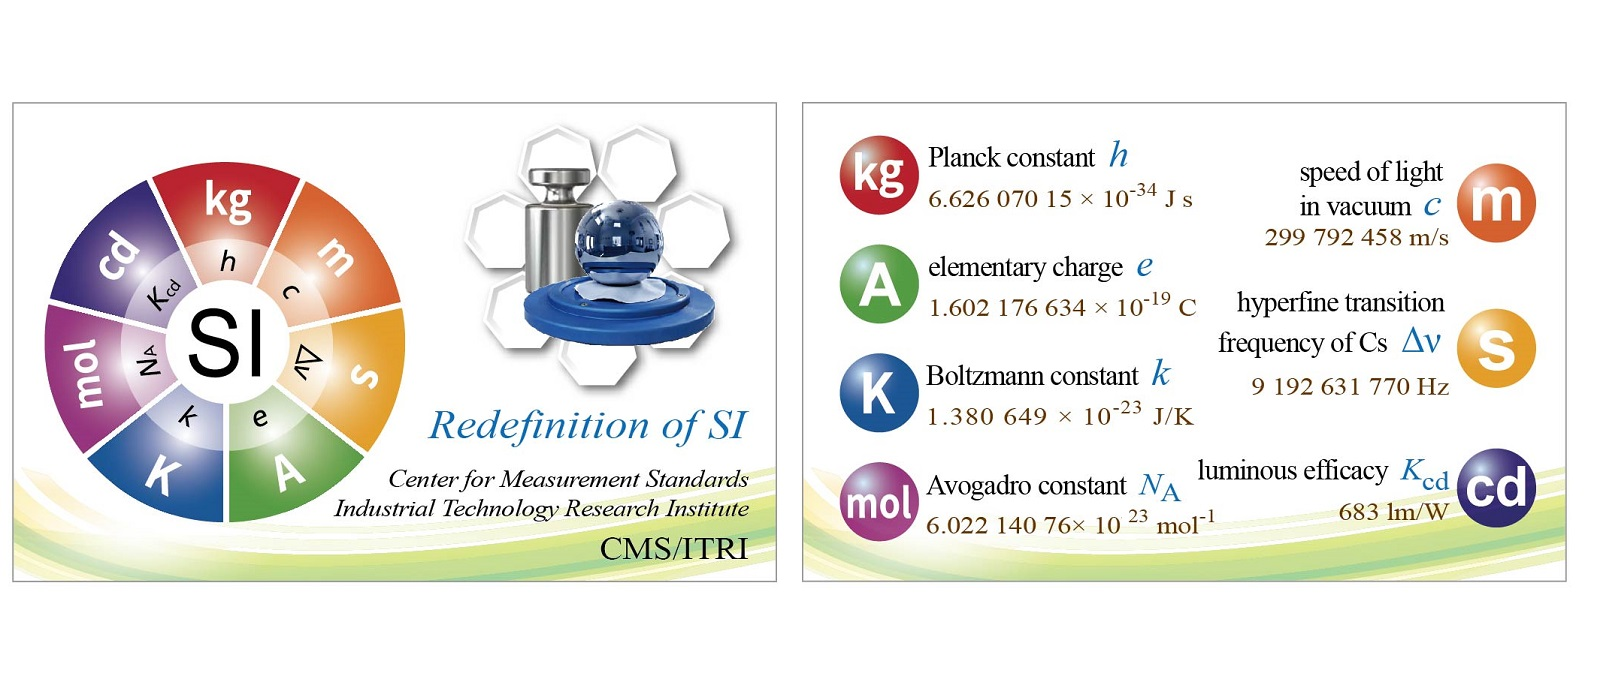 Redefinition of SI